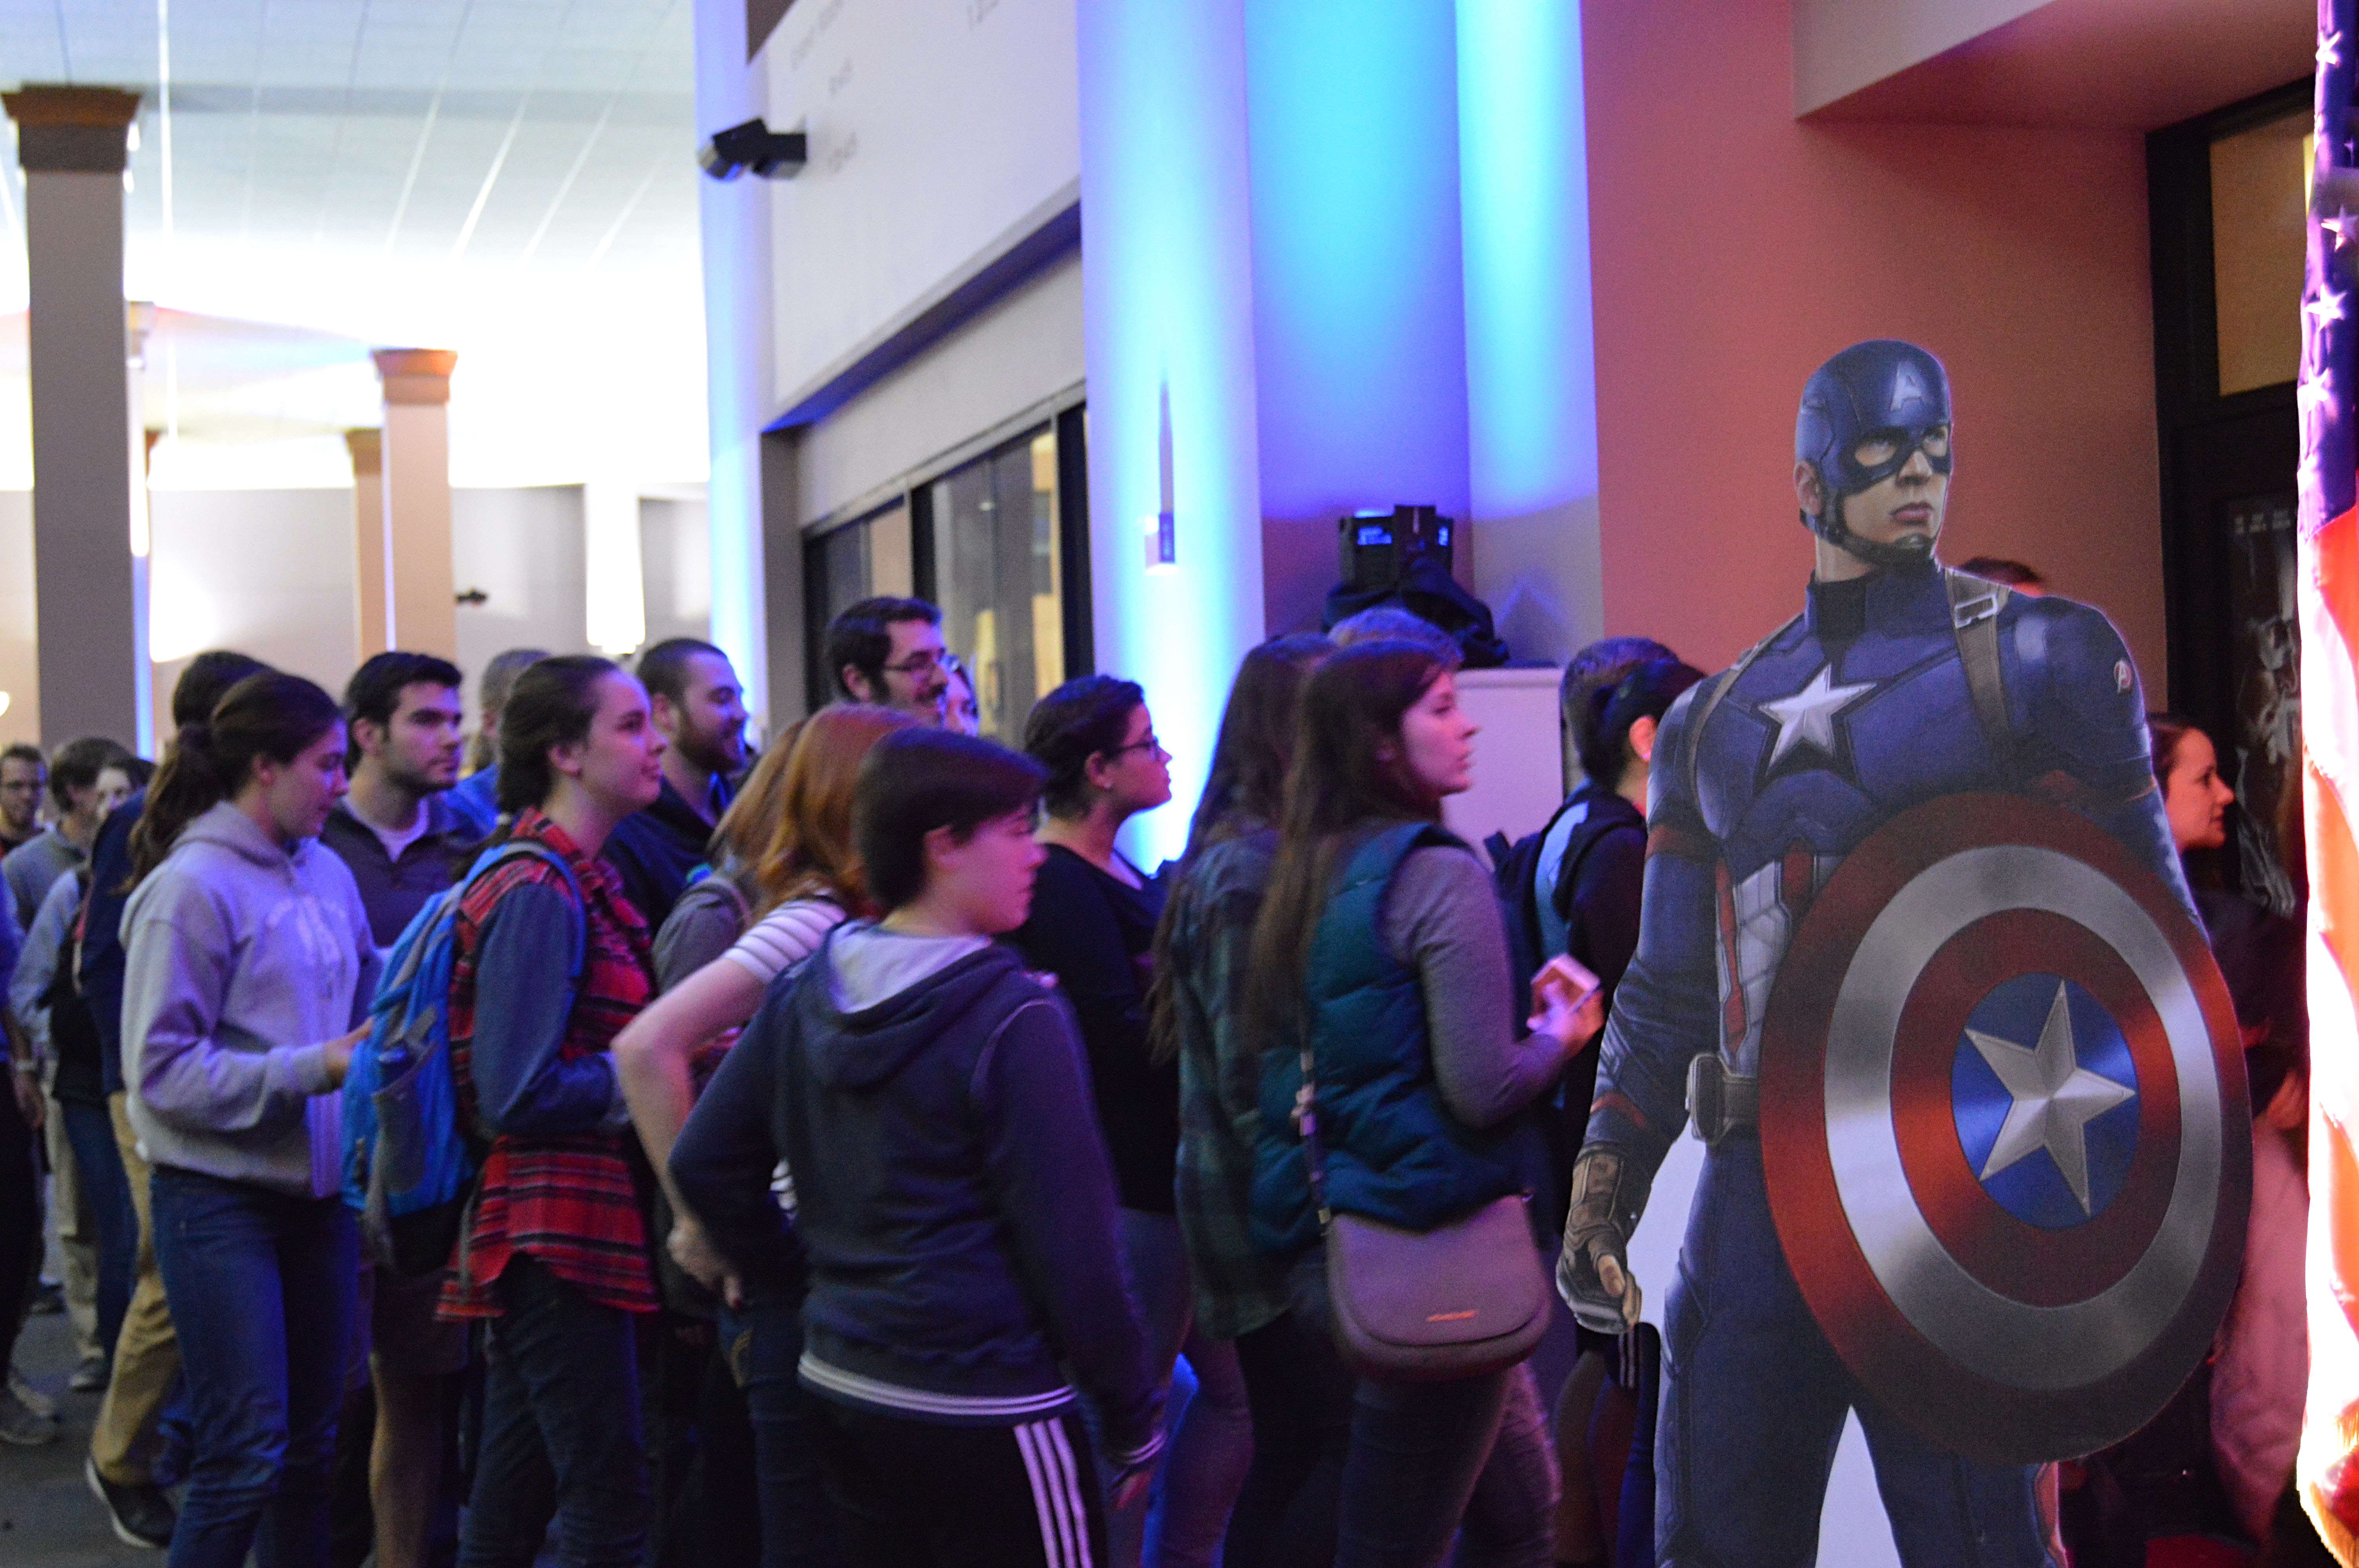 Doors open to the theater for the 9:45pm showing. The movie would show again later in the SSC Events Room at 11:15 pm, and the pumpkin carving and laser tag activities would be available through both showings. [photo: Priscila Gonzalez]